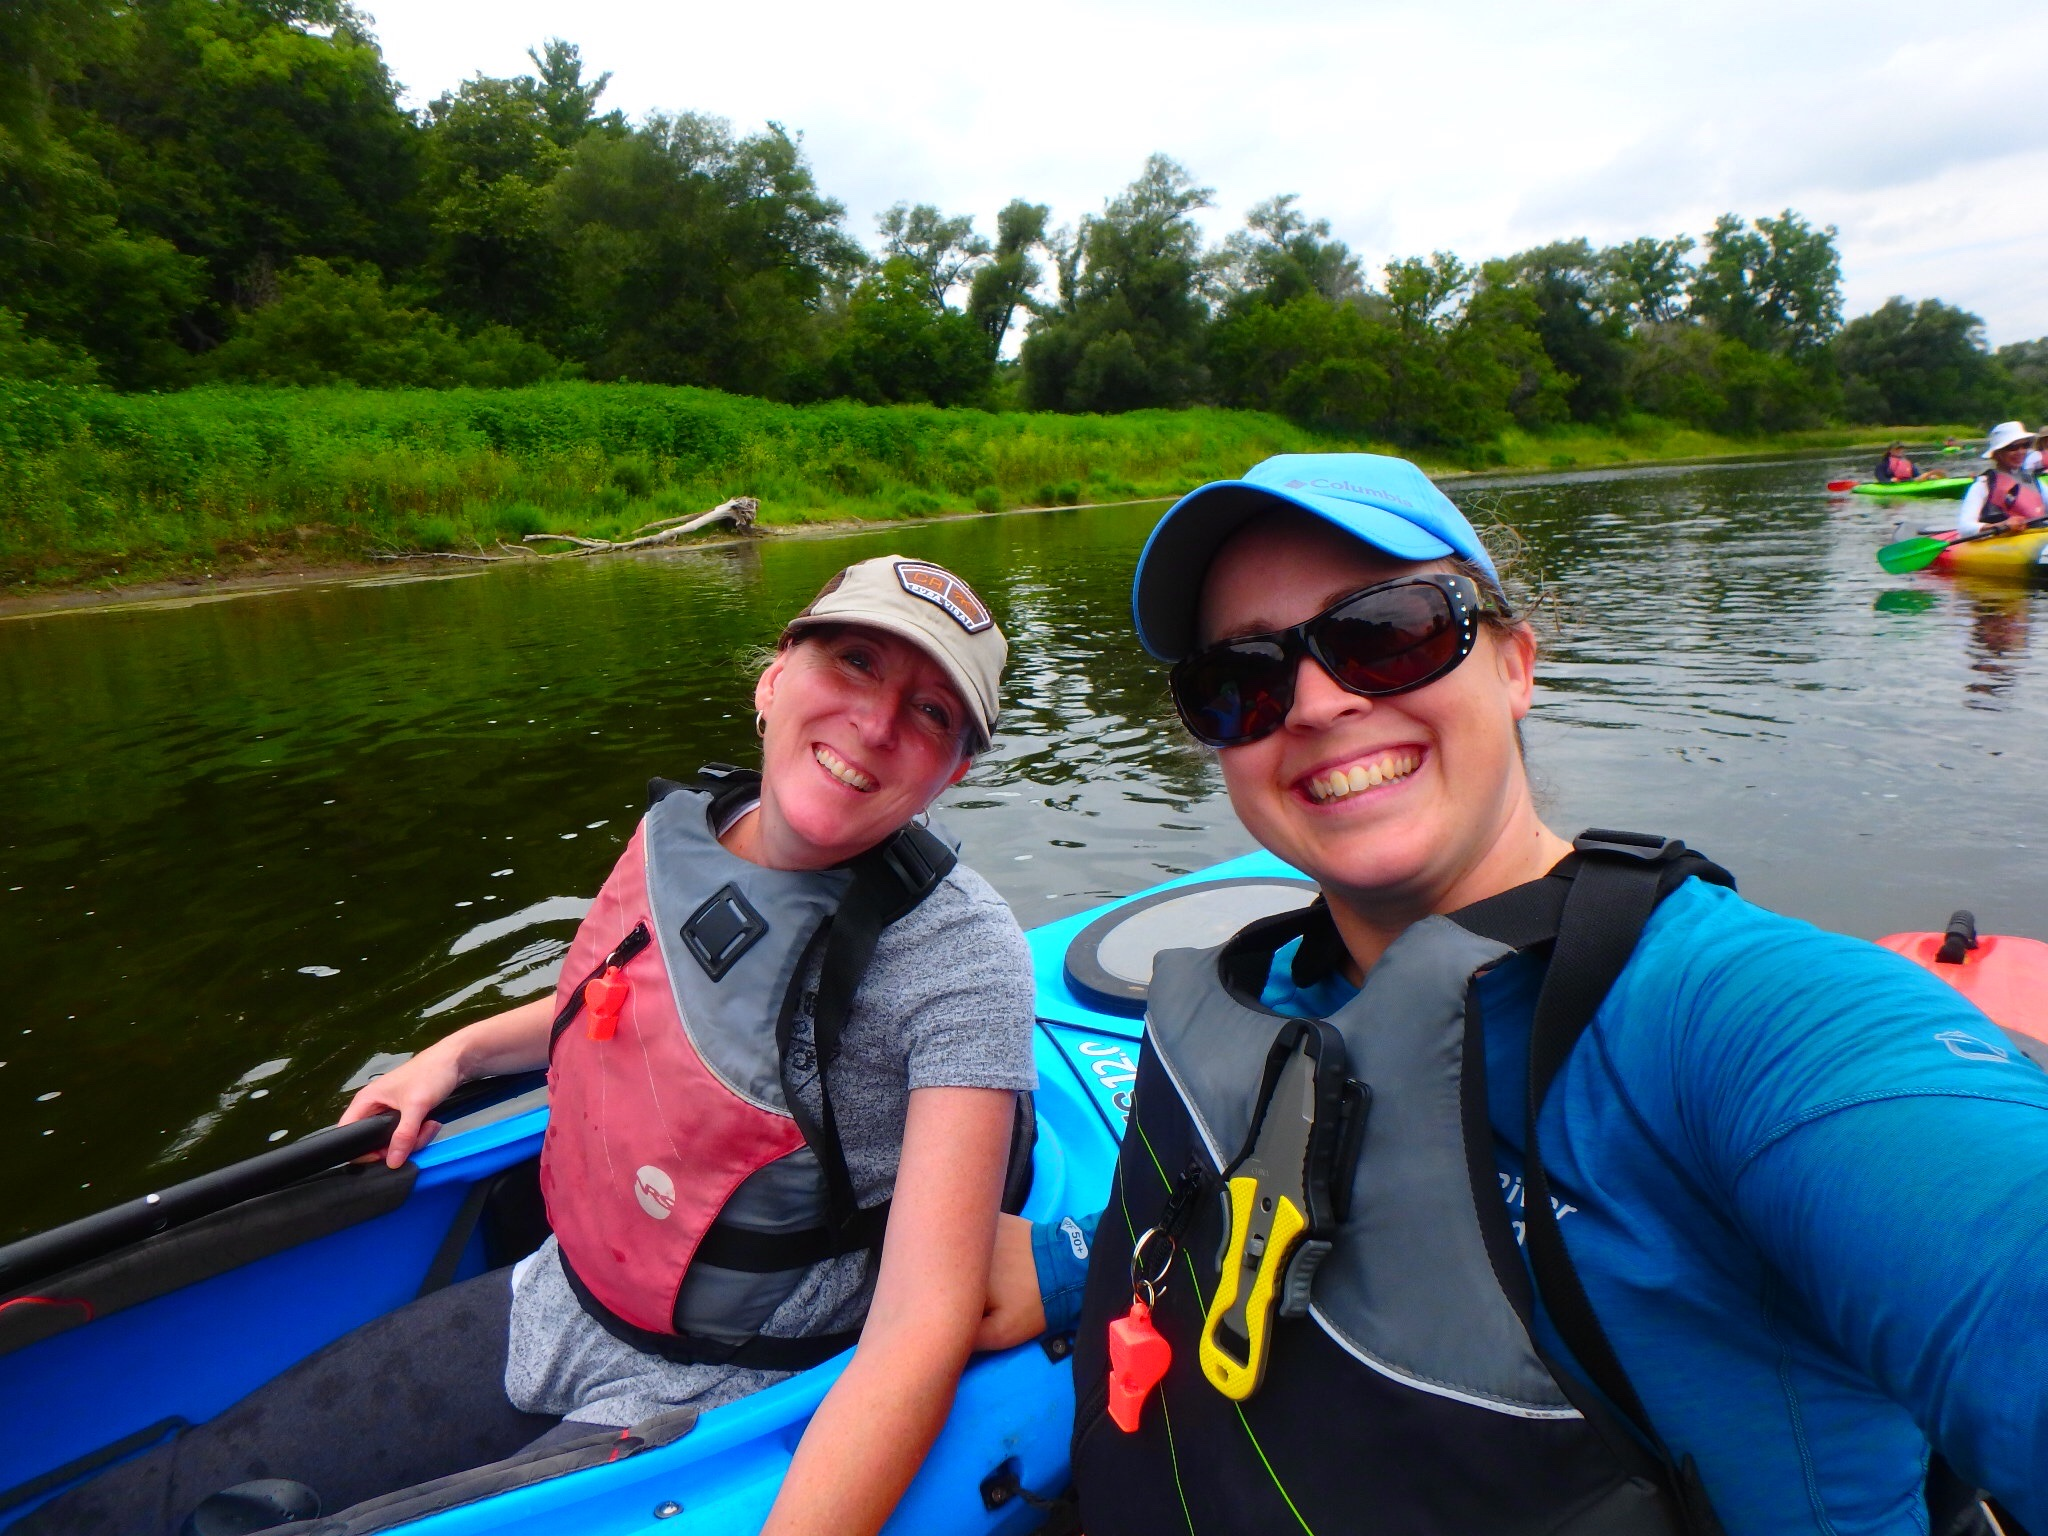 August 1, 2018 - Kayaking, Meditation & Yoga-93